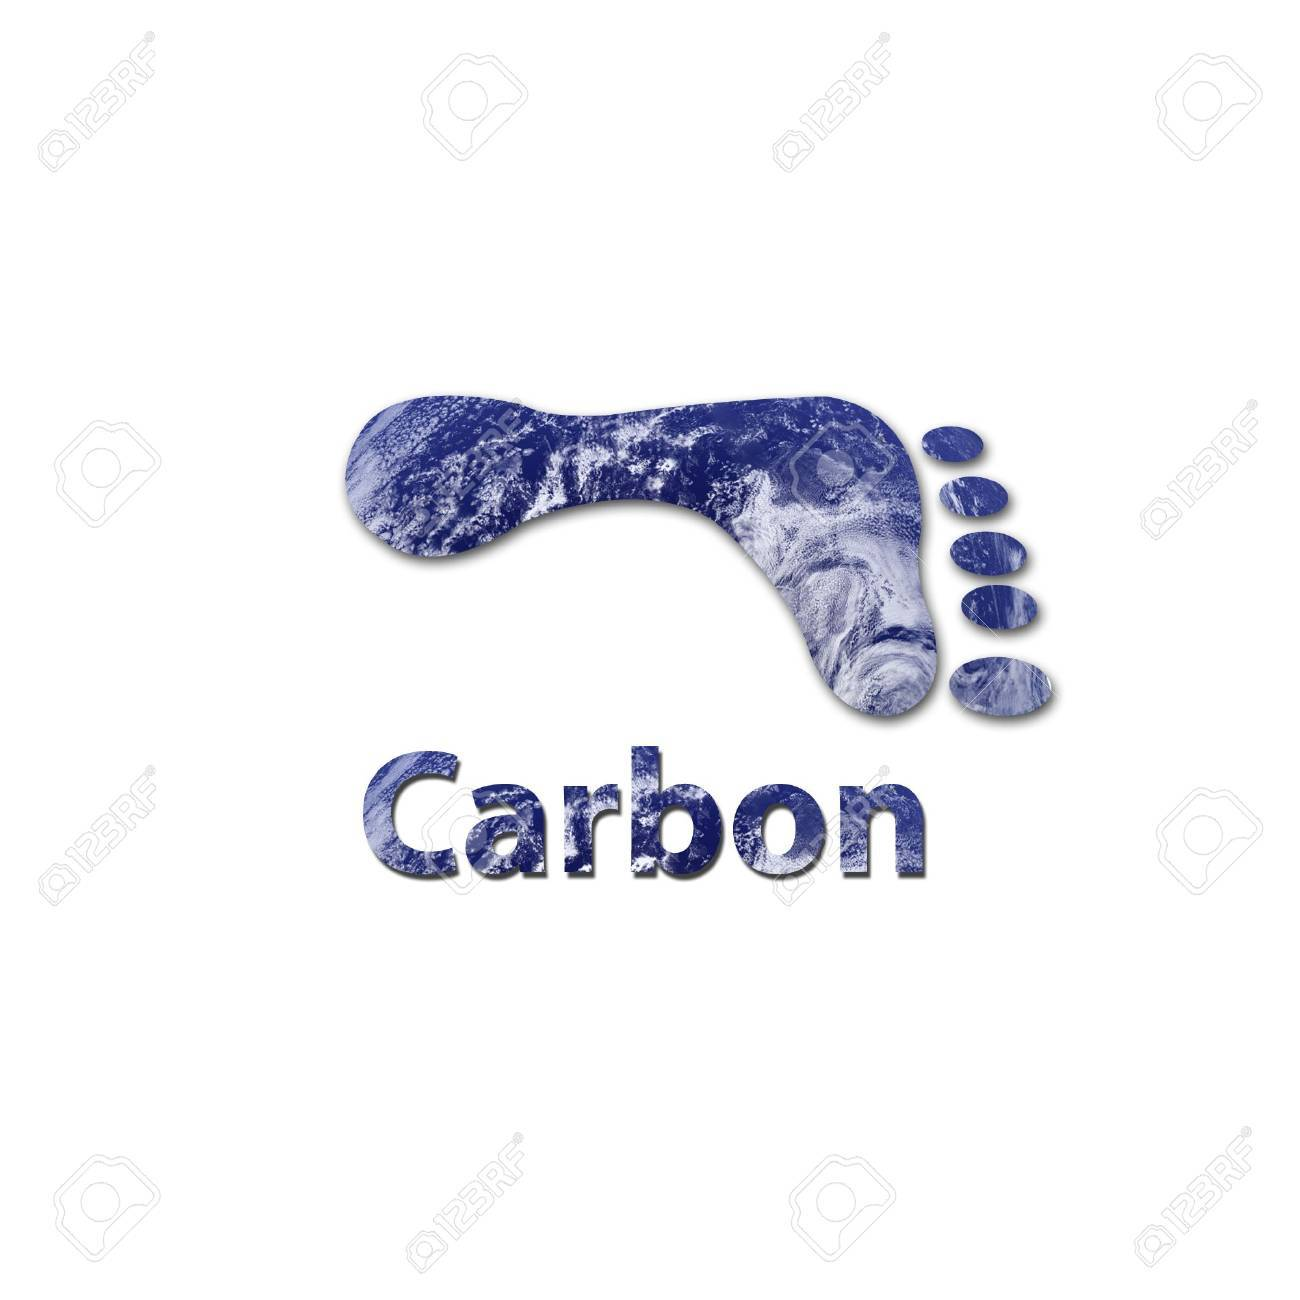 Footprint made up of water to represent environmental issues or carbon footprint. Stock Photo - 6481326